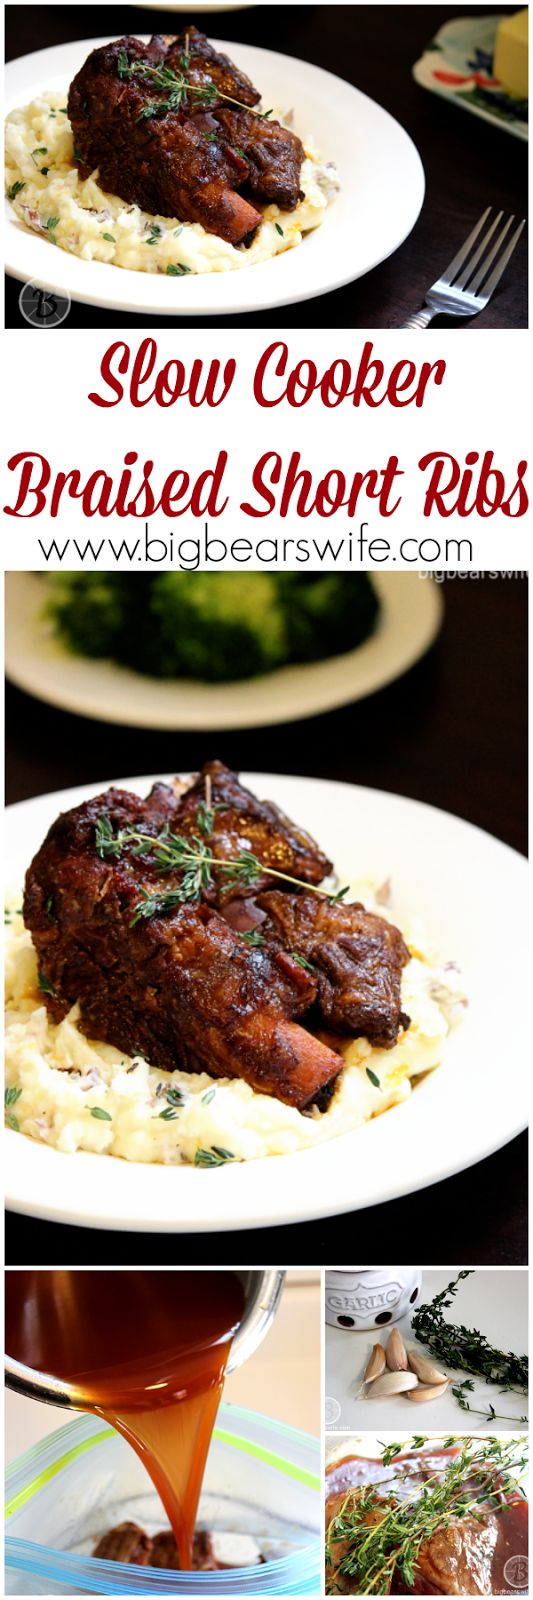 Big Bear's Wife: Slow Cooker Braised Short Ribs #SundaySupper